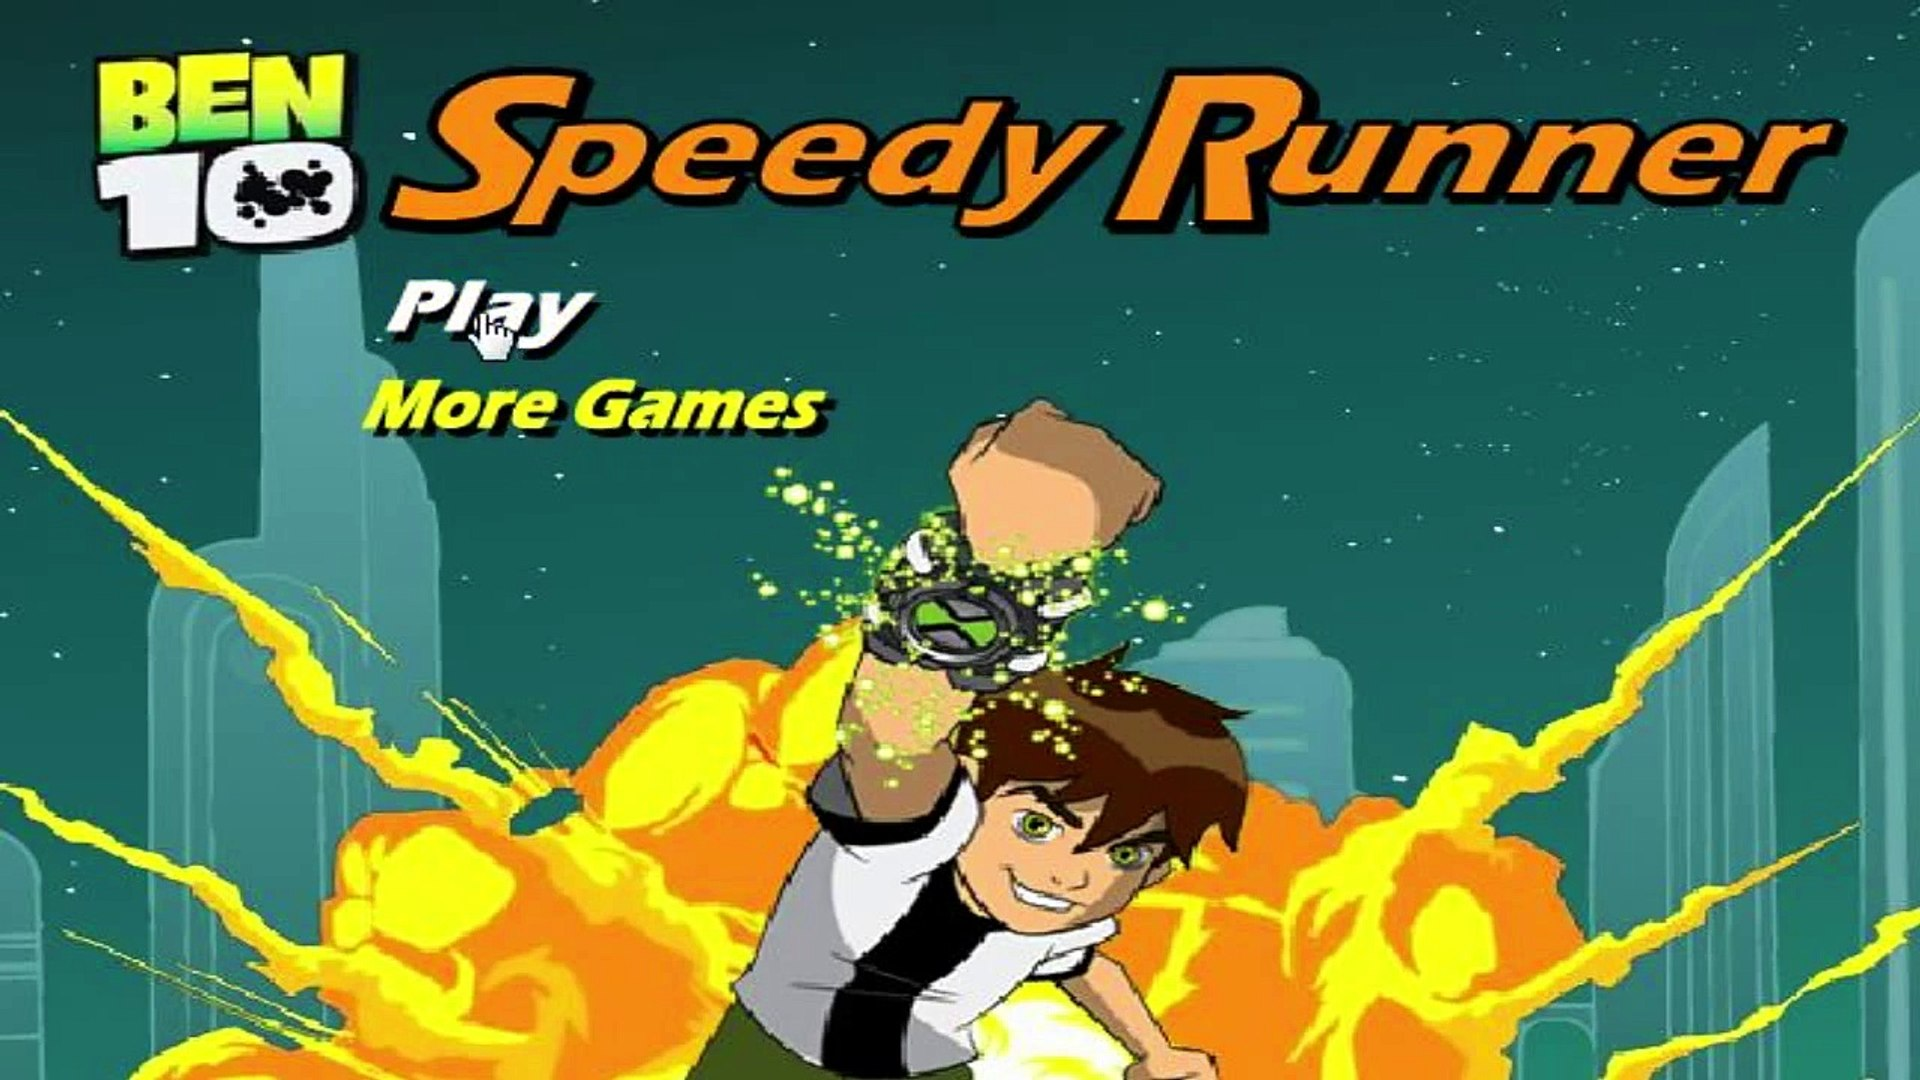 Ben 10 Speedy Runner - Ben 10 Games